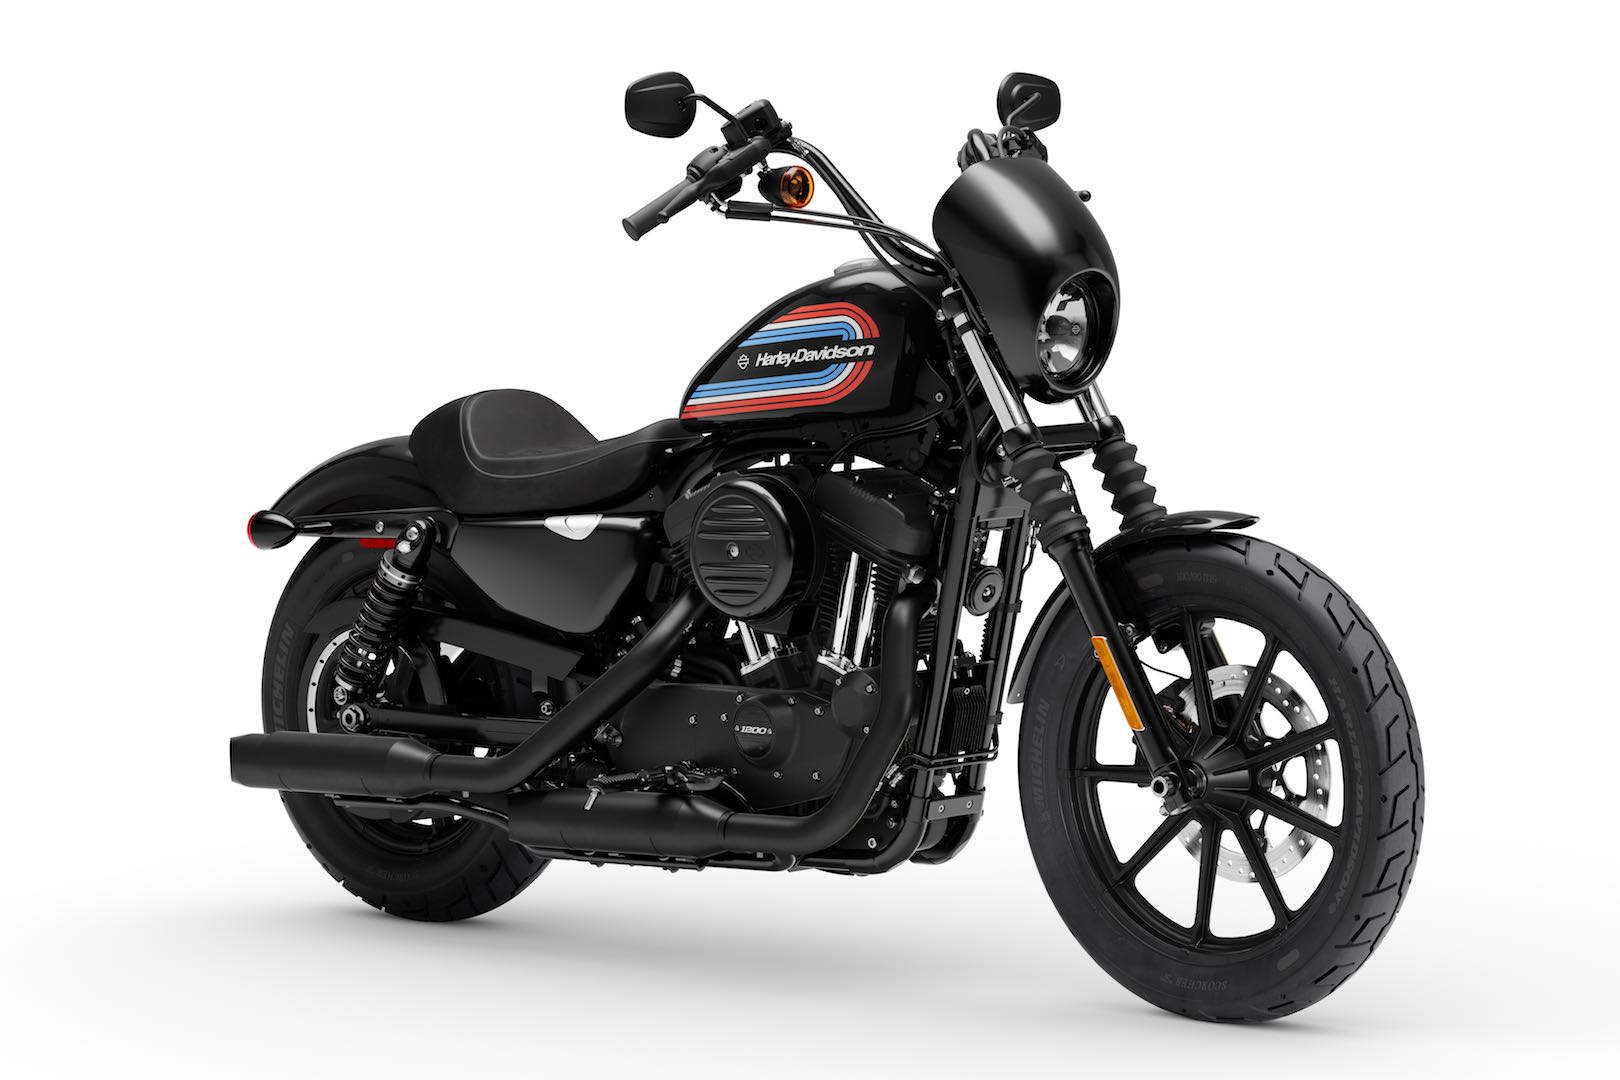 2020 Harley Iron 1200 for sale